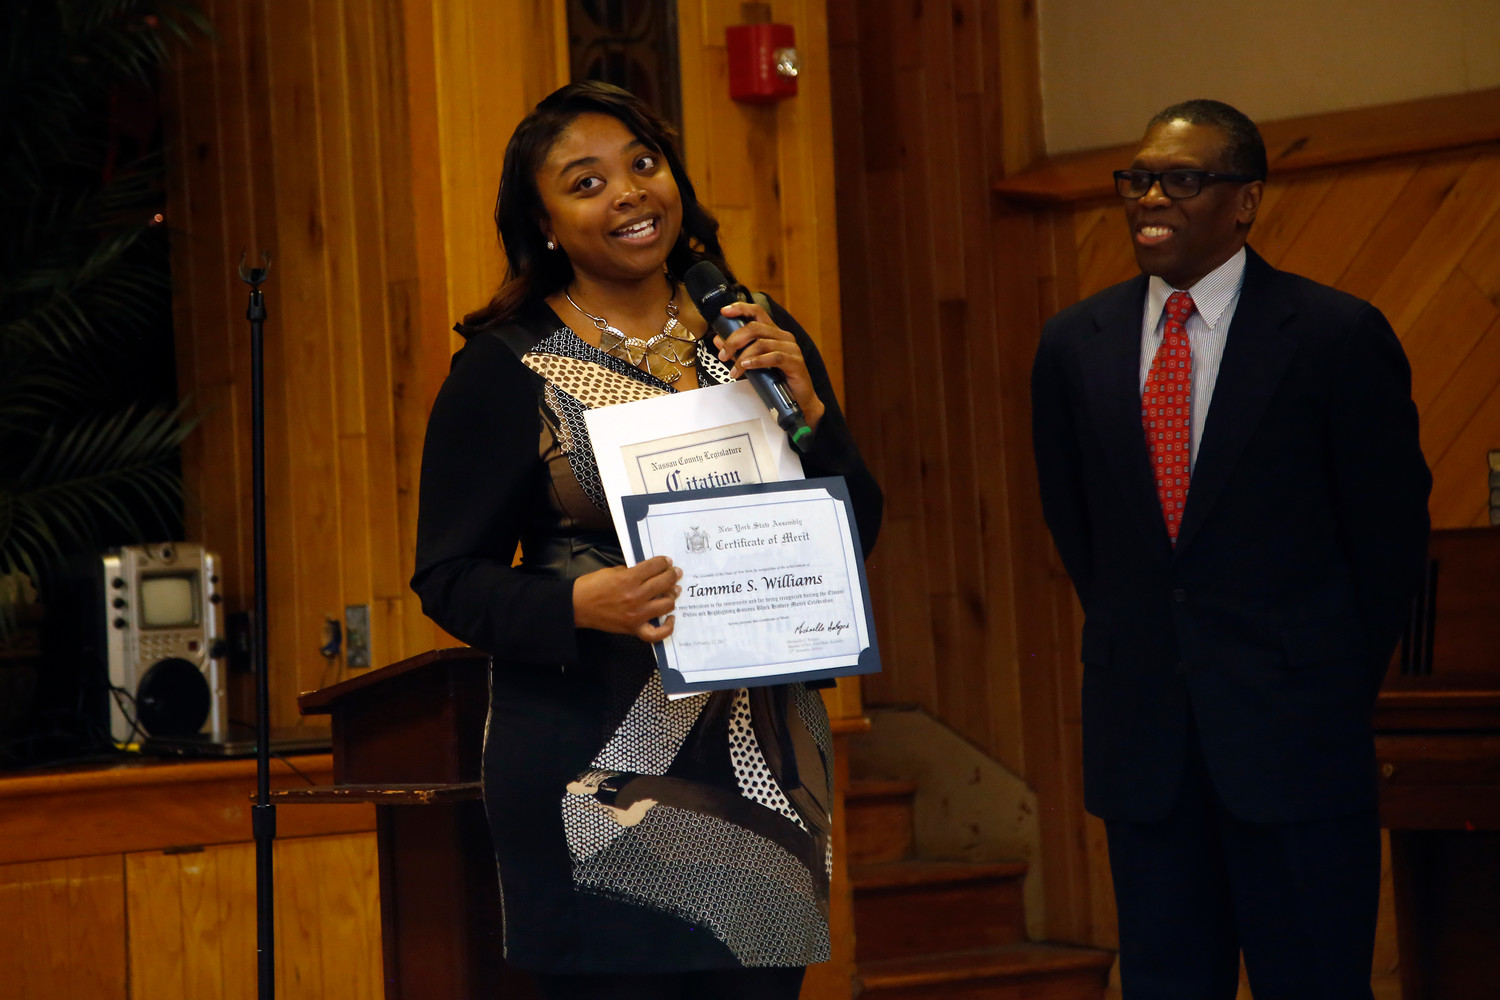 Tammie Williams, above with Aubrey Phillips, was honored for her work as a community activist in February, during Black History Month, at St. John's United Methodist Church of Elmont.